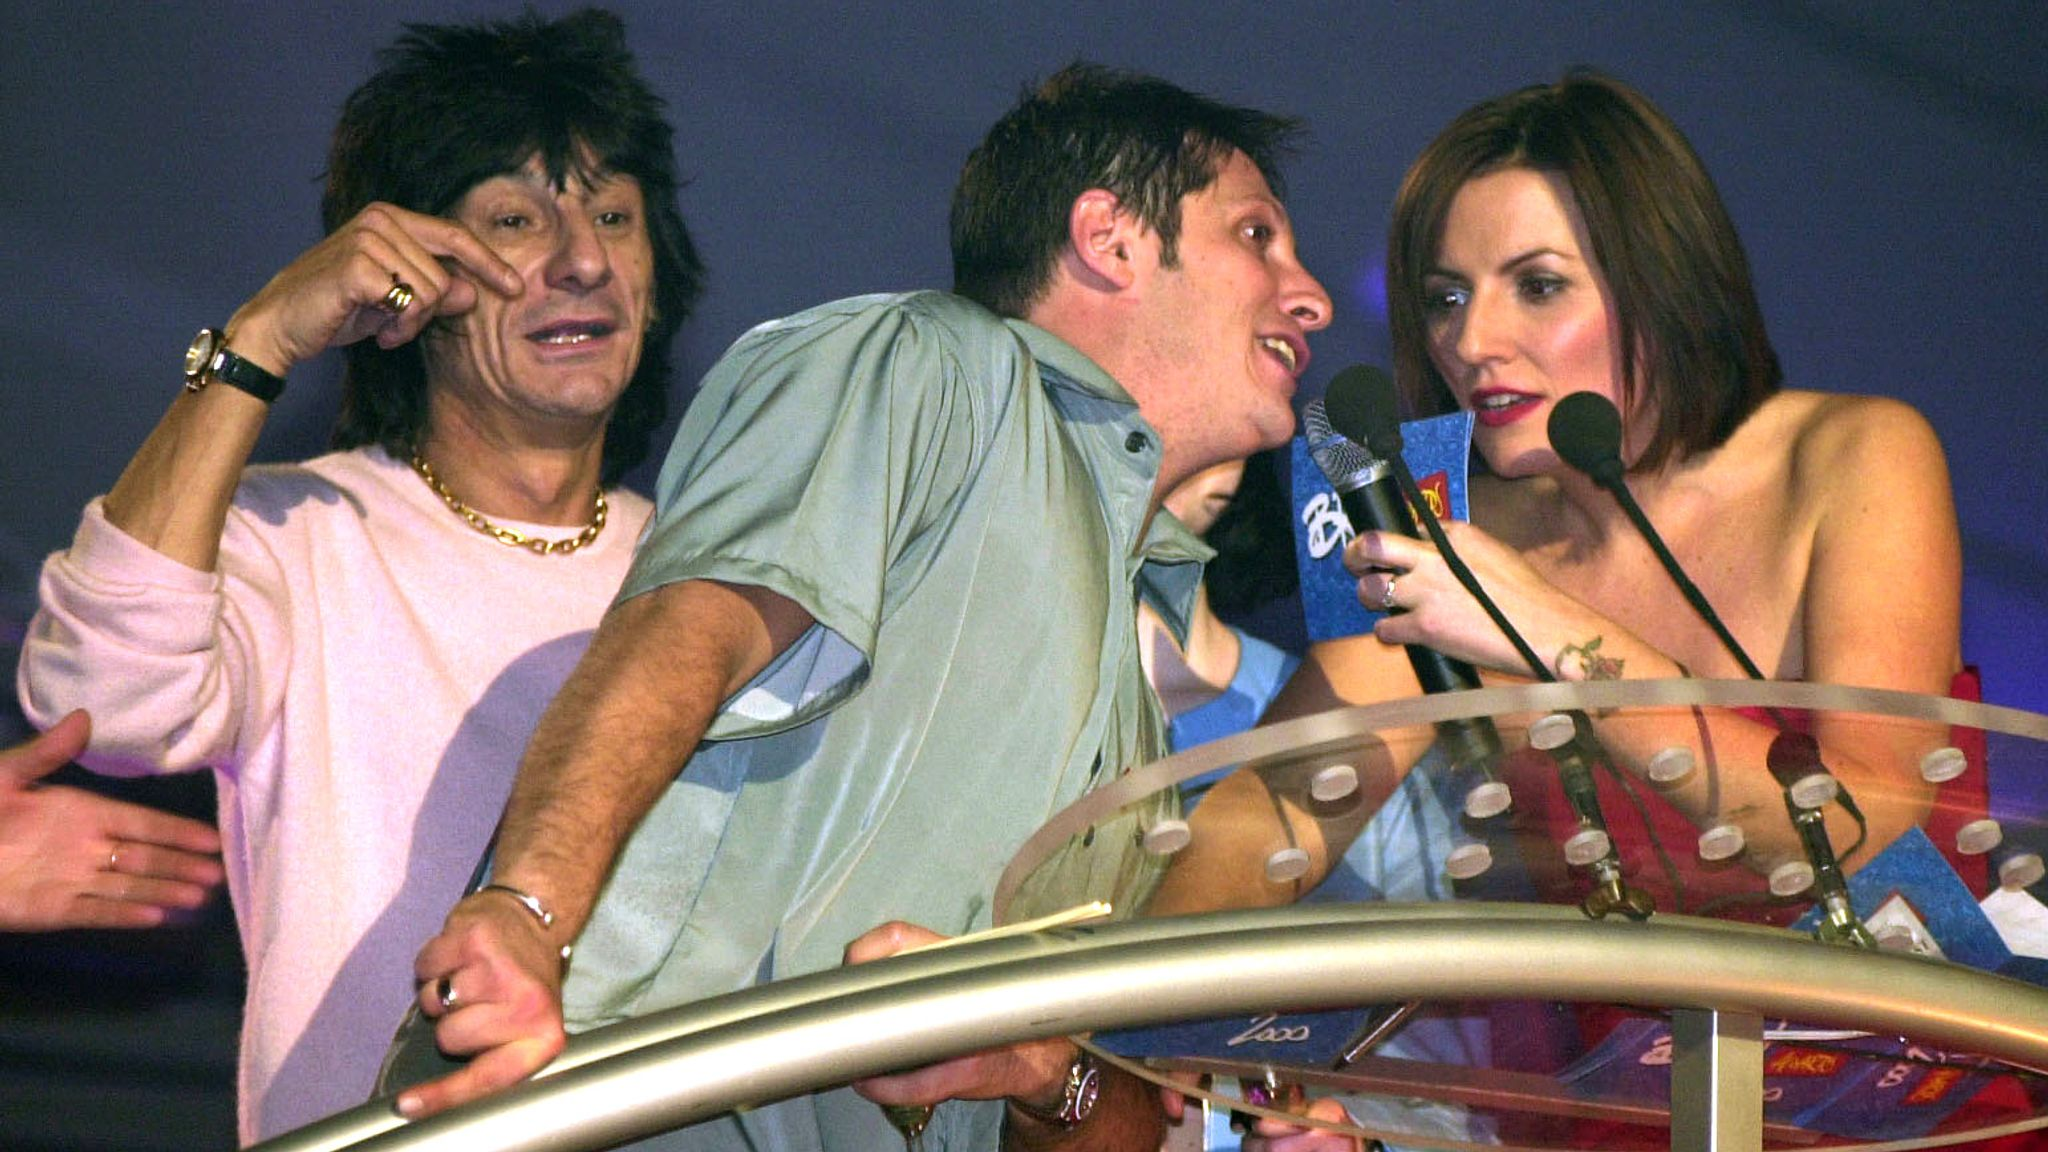 Brandon Block walks on stage to have a word with the ceremony's host Davina McCall, and interrupting Rolling Stones guitarist Ronnie Wood in 2000